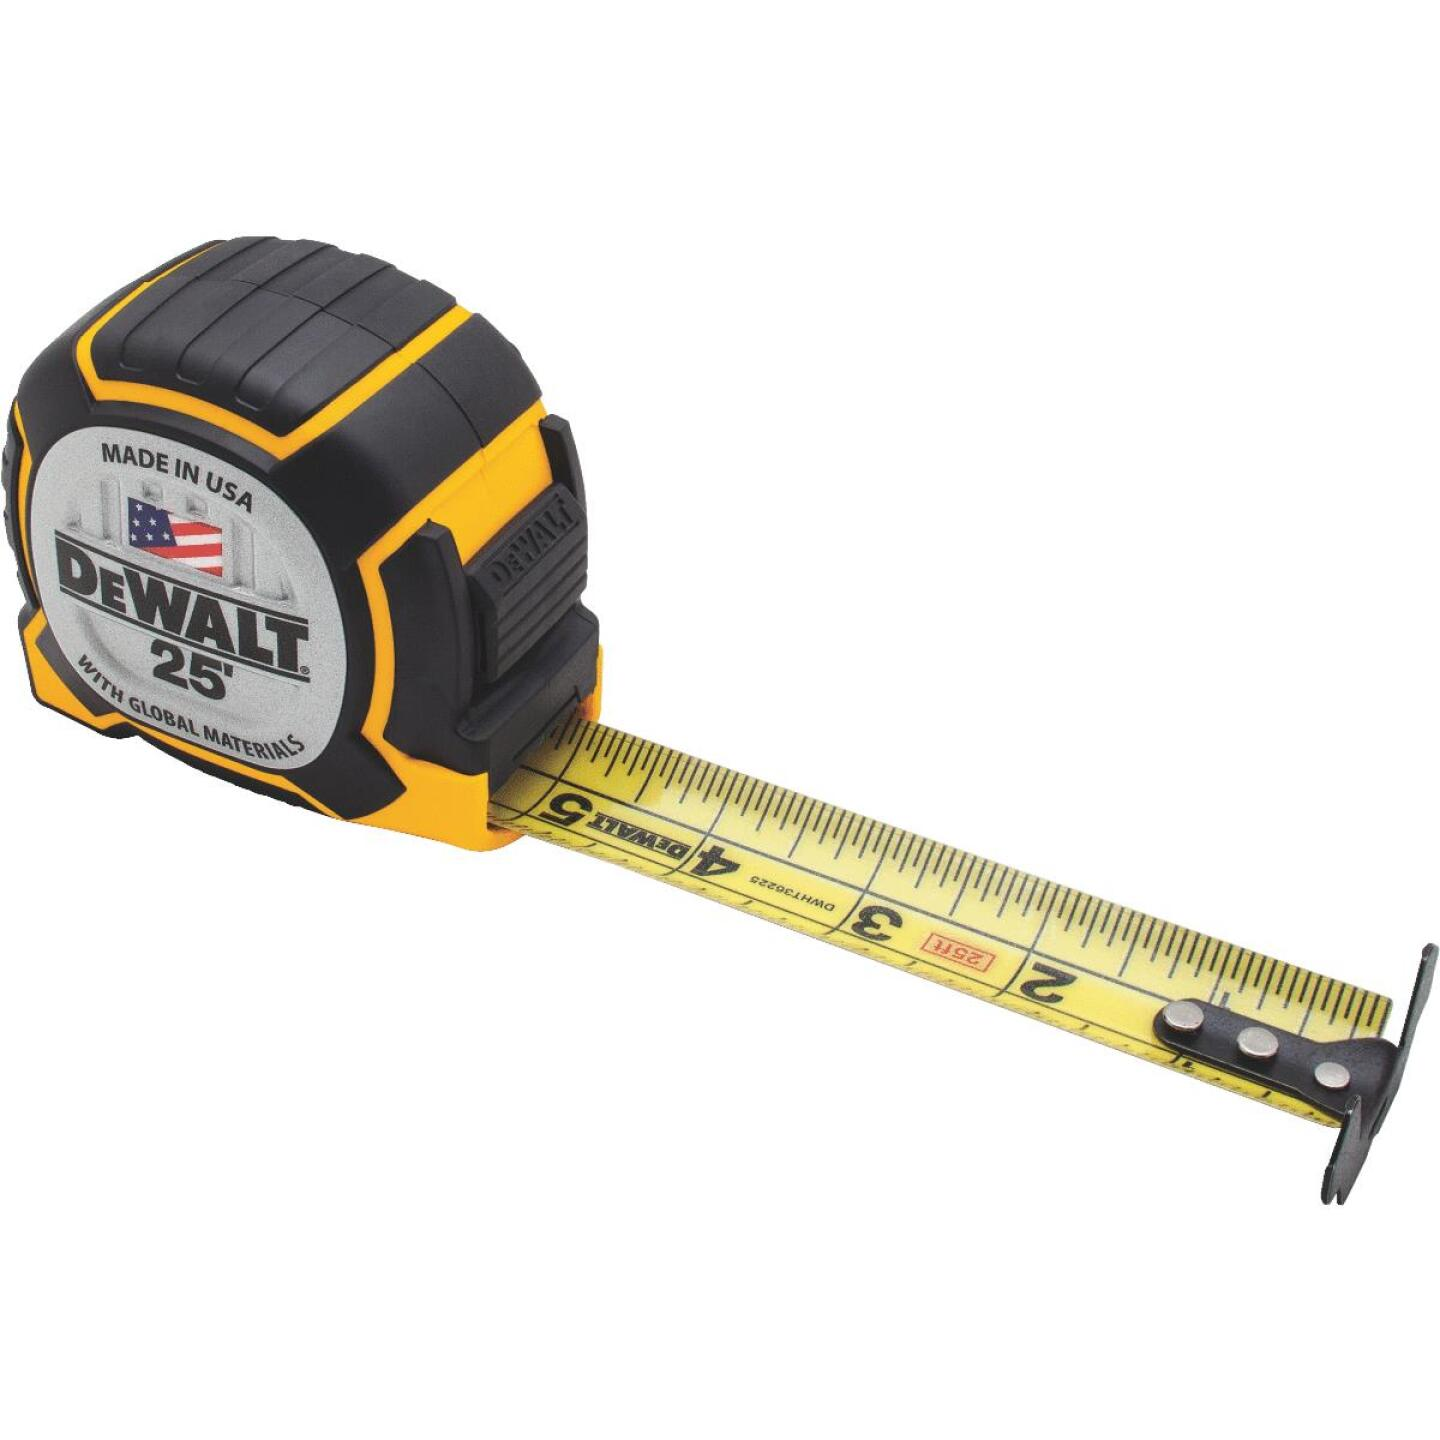 DeWalt XP 25 Ft. Tape Measure Image 1